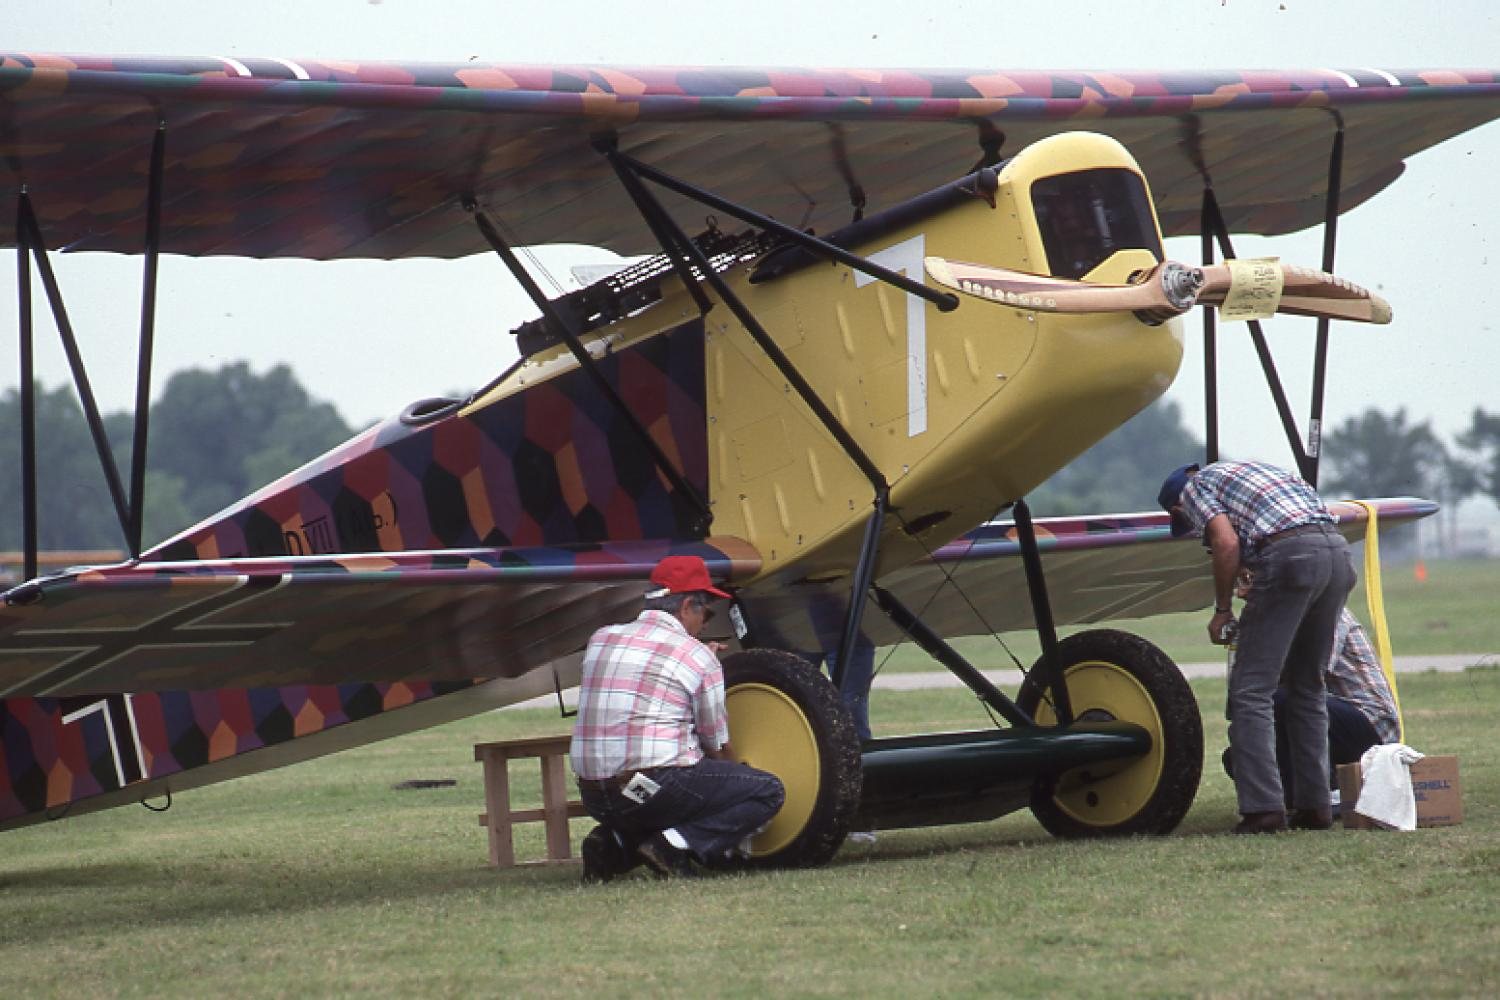 Biplane Expo                                                                                                      [Sequence #]: 1 of 1